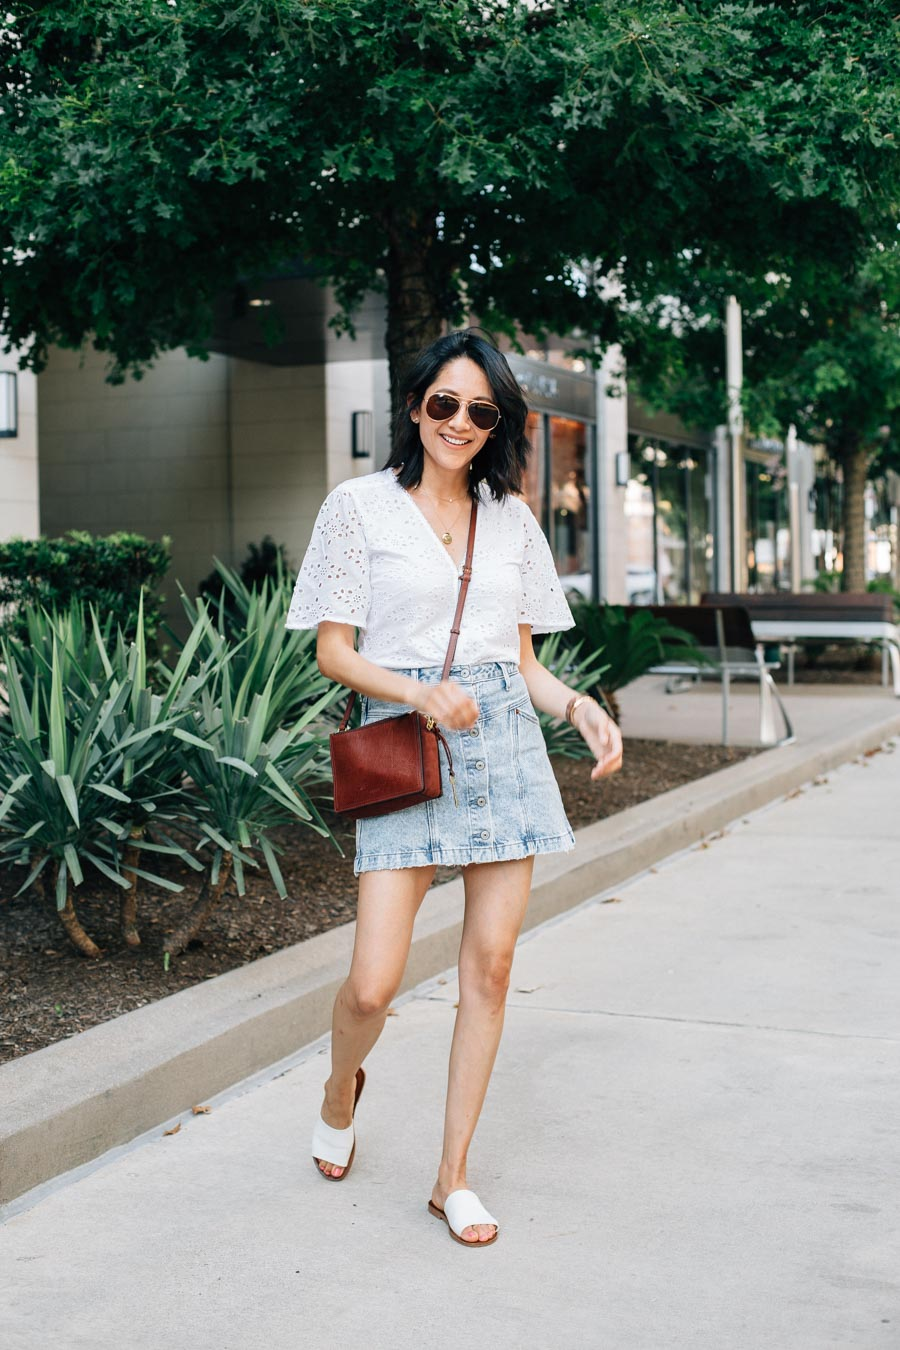 How to wear an acid wash denim skirt for summer